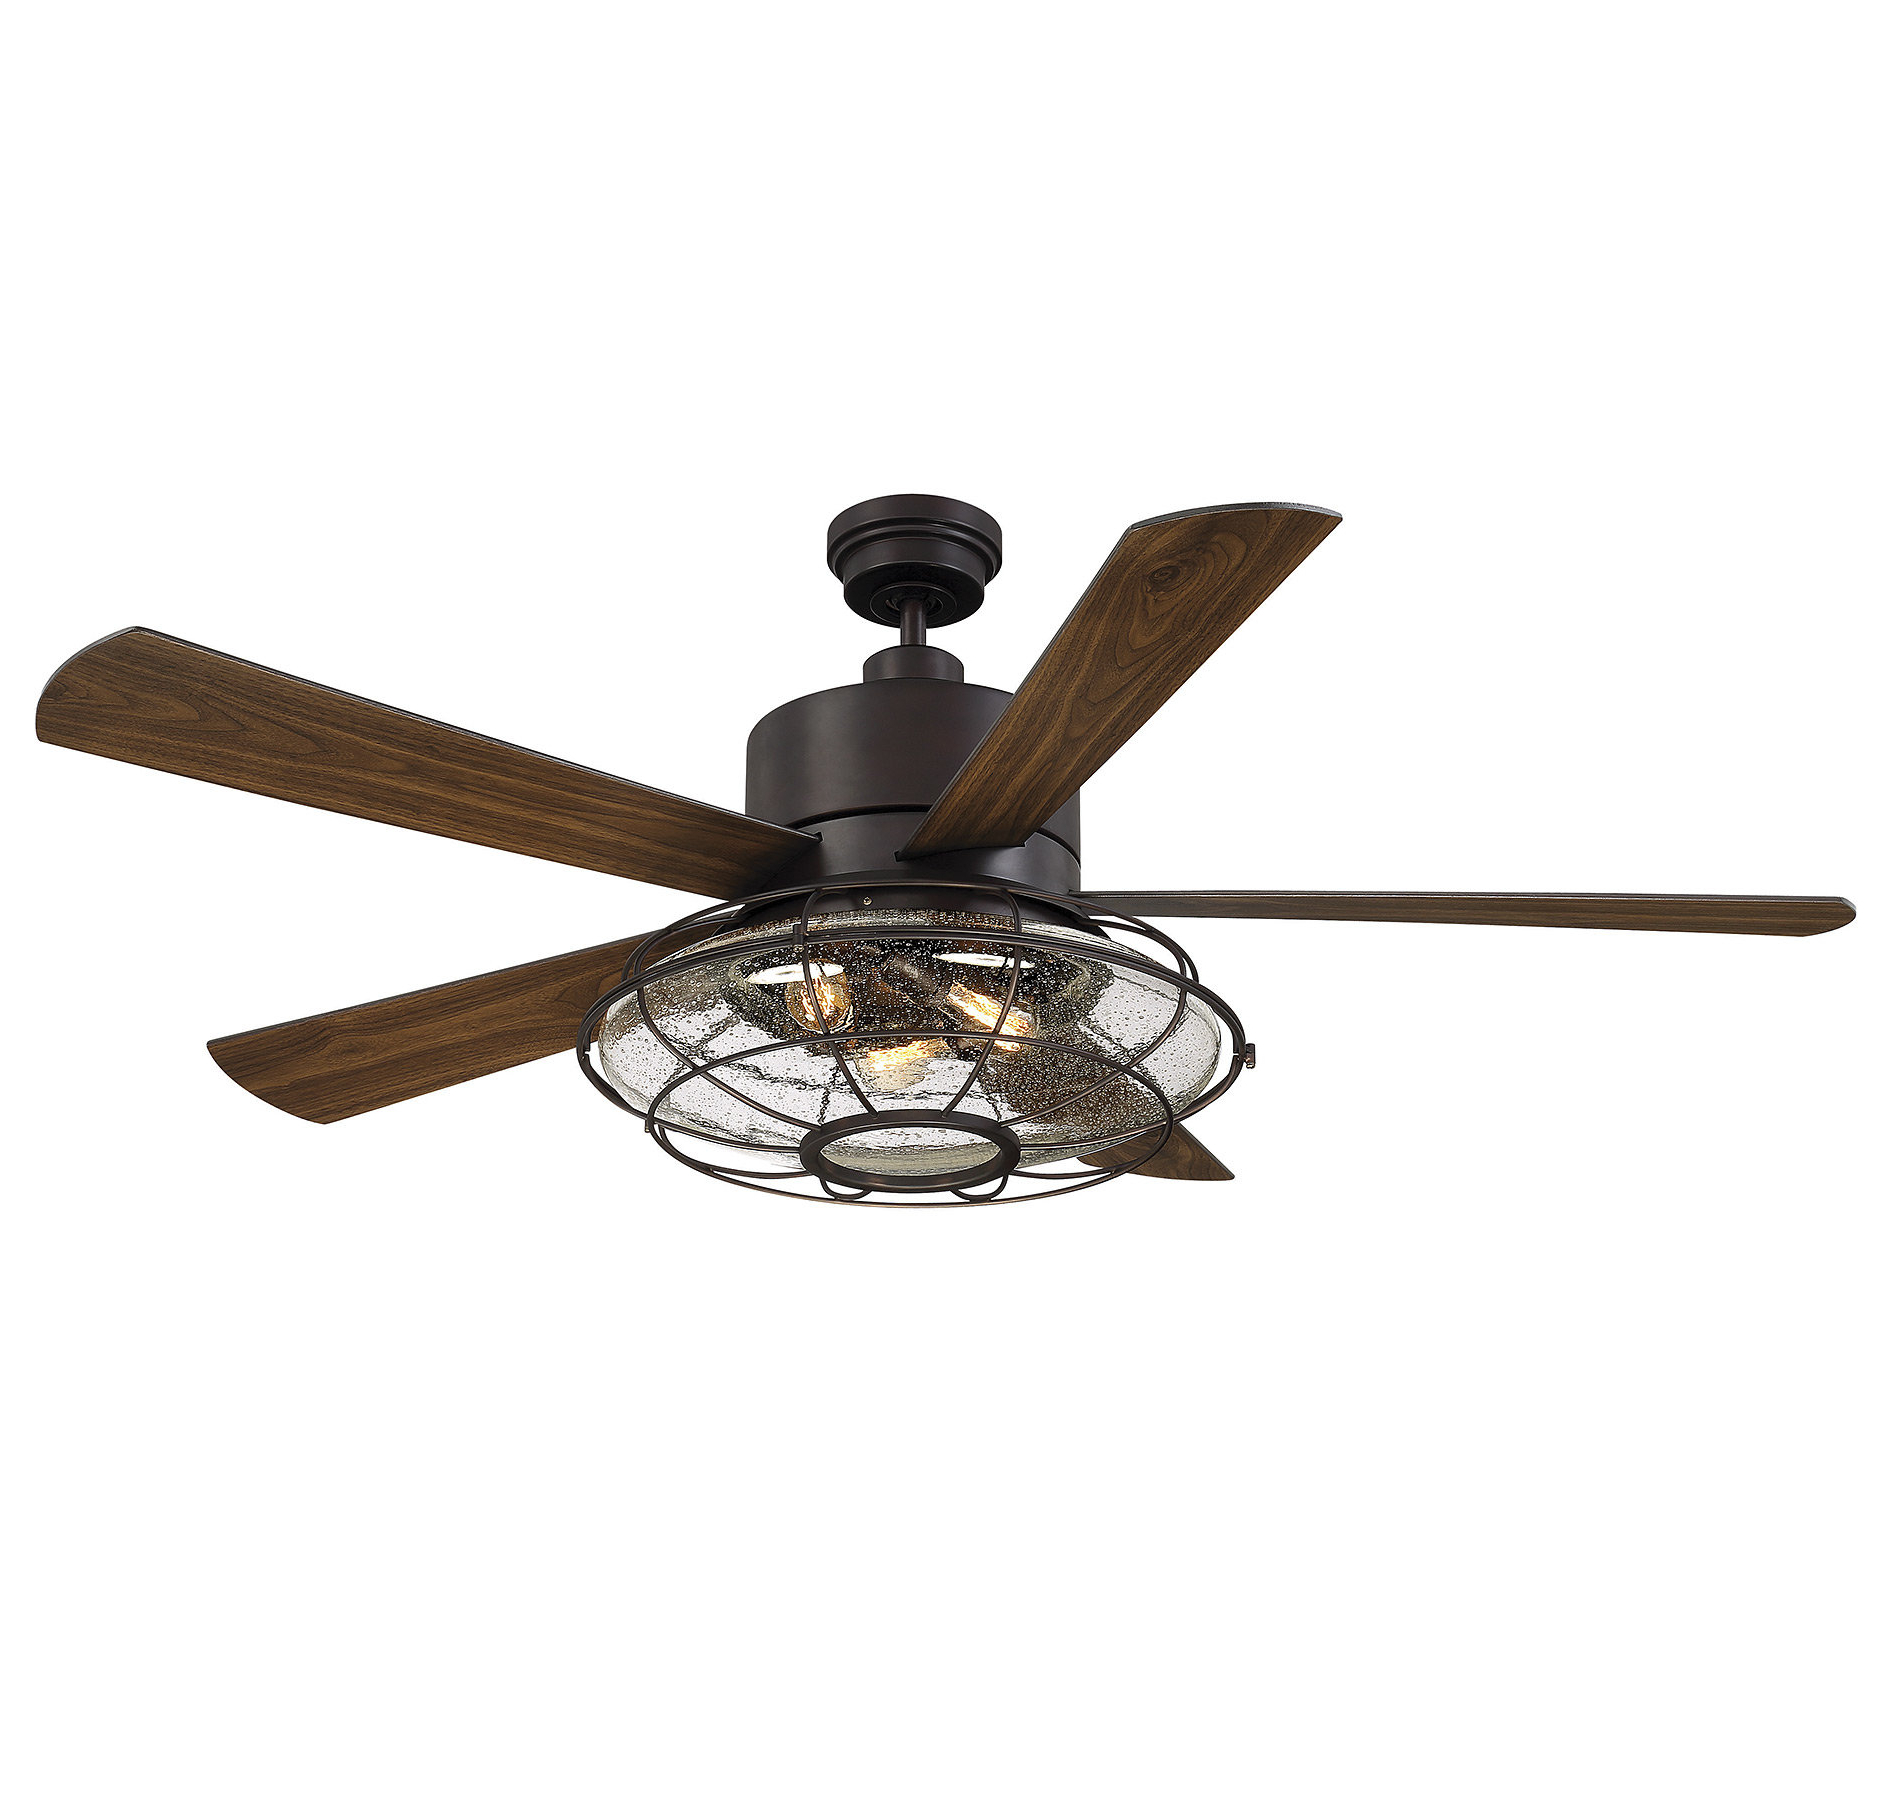 "Well Known 5 Blade Ceiling Fans Regarding 56"" Roberts 5 Blade Ceiling Fan With Remote Control, Light Kit Included (View 8 of 20)"